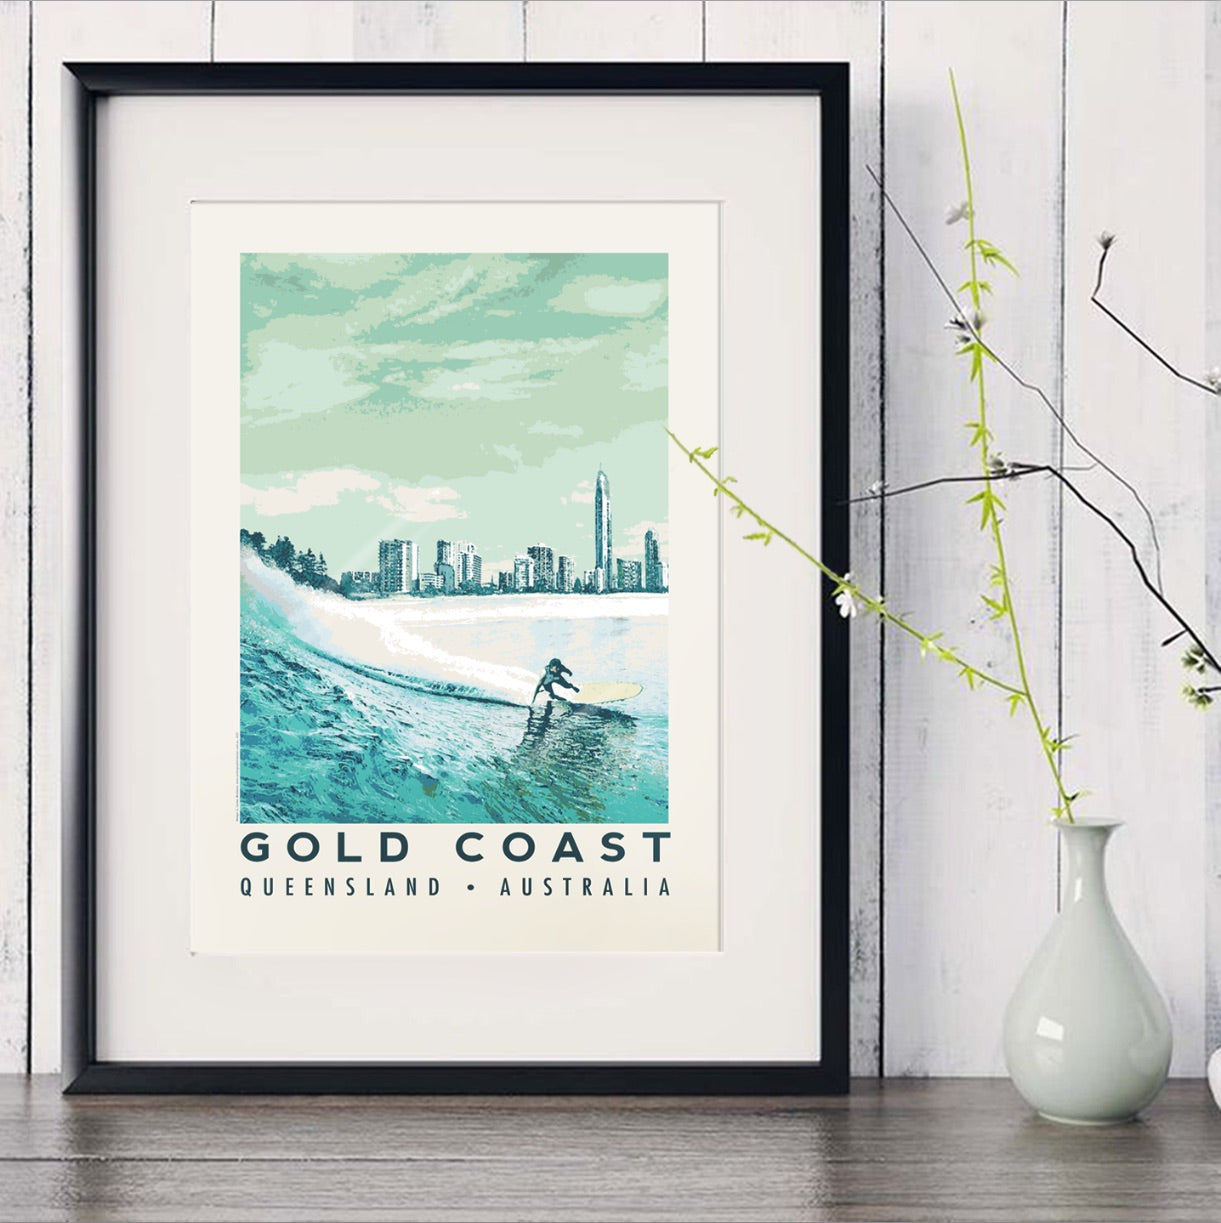 Descart 'Surfer' art print in frame with vase